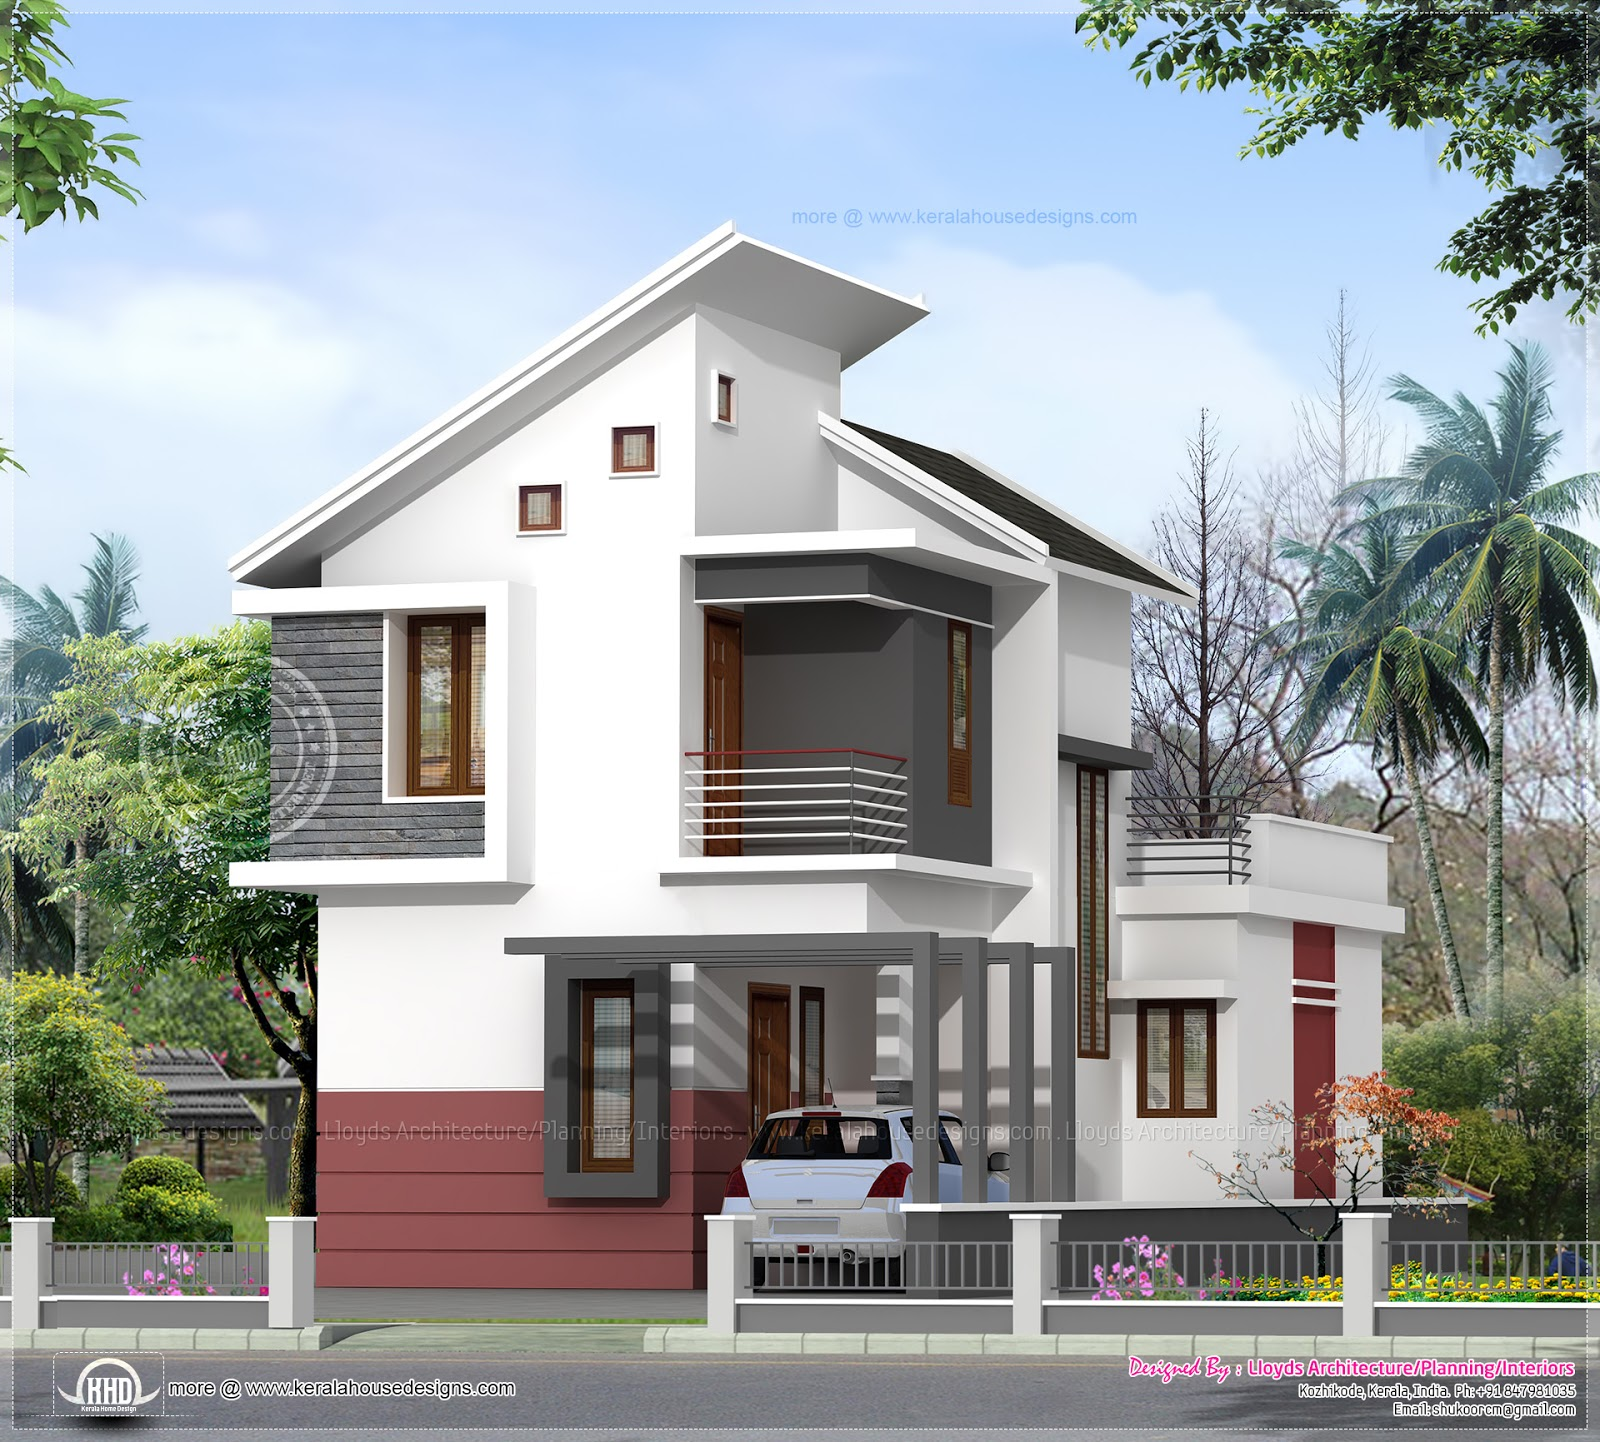 1197 sq ft 3 bedroom villa in 3 cents plot kerala home design and floor plans Small house design